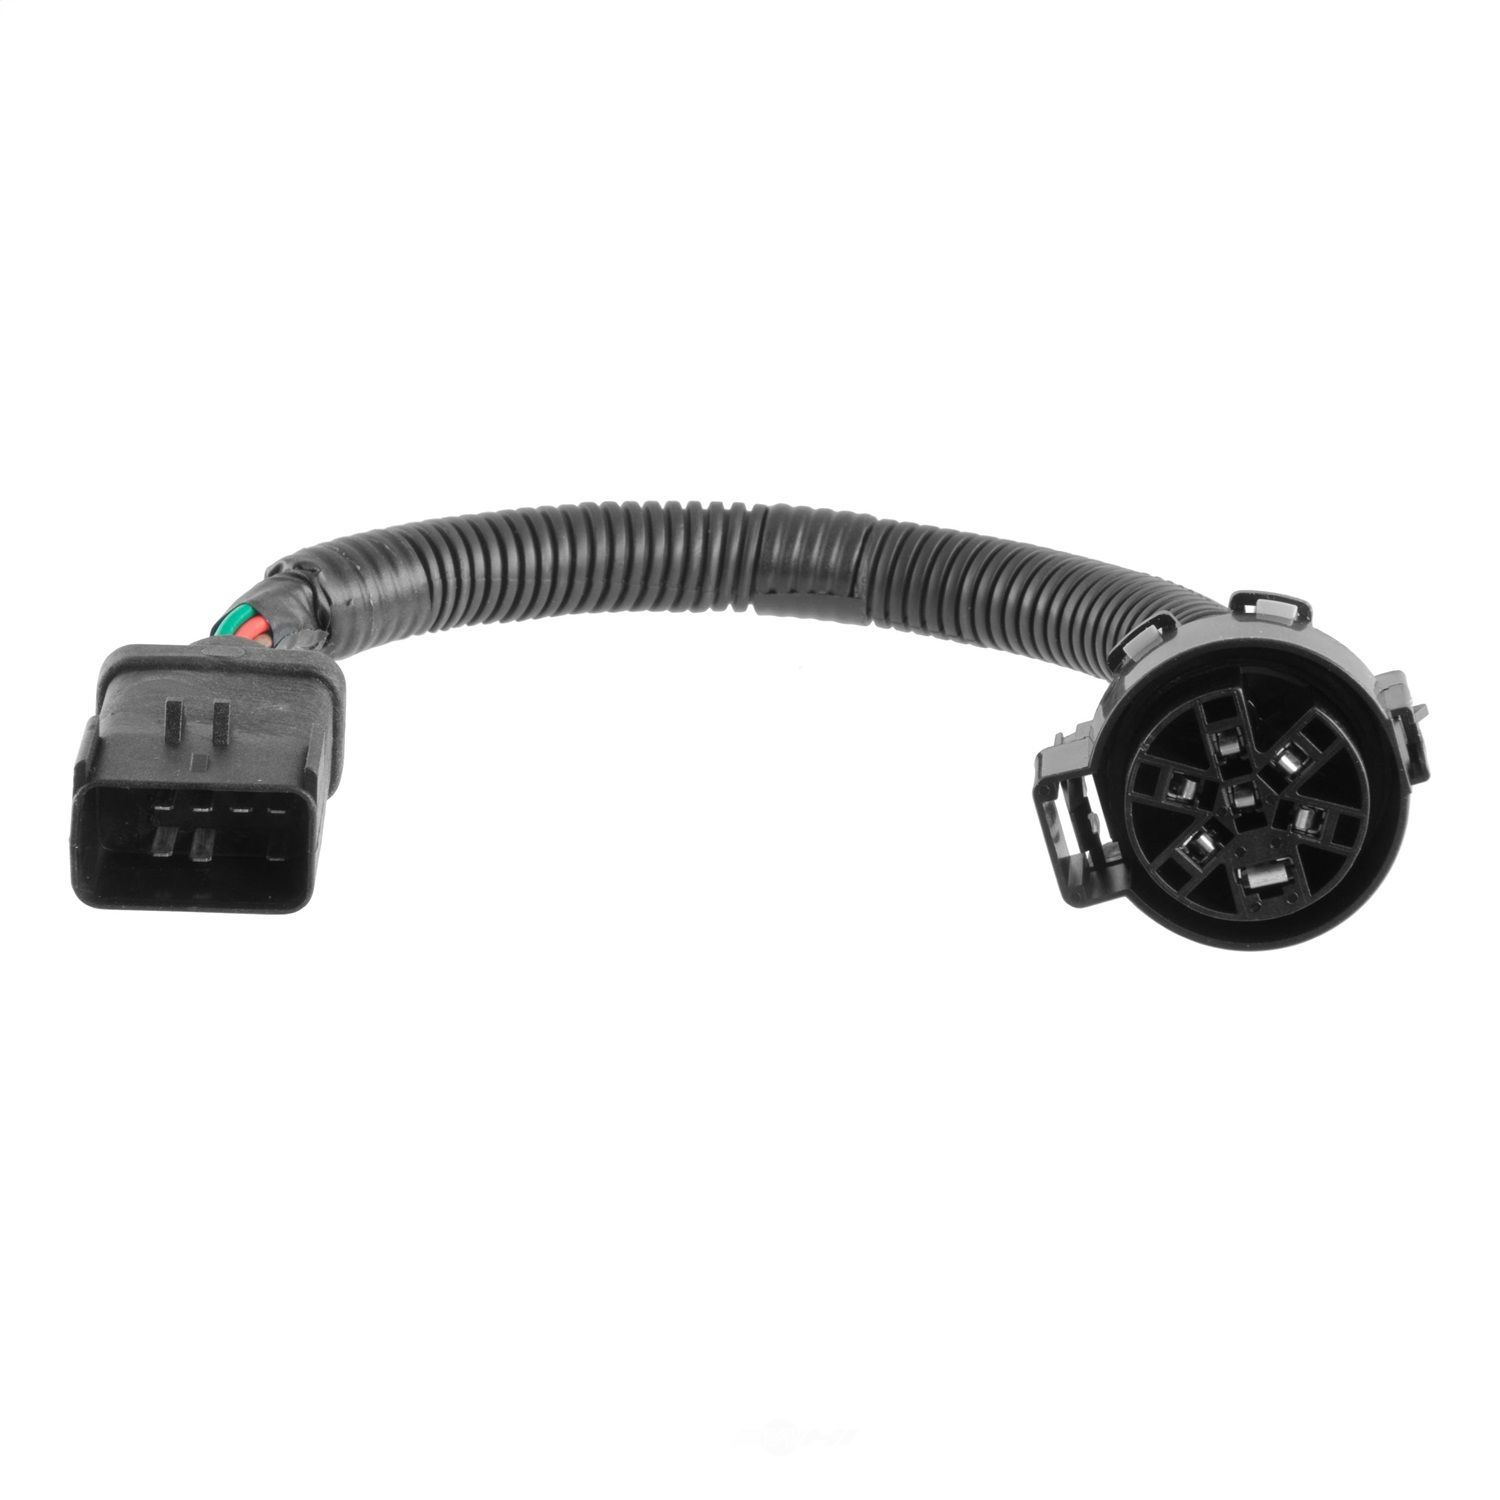 CURT MFG INC. - Electrical Adapter - CUR 57300